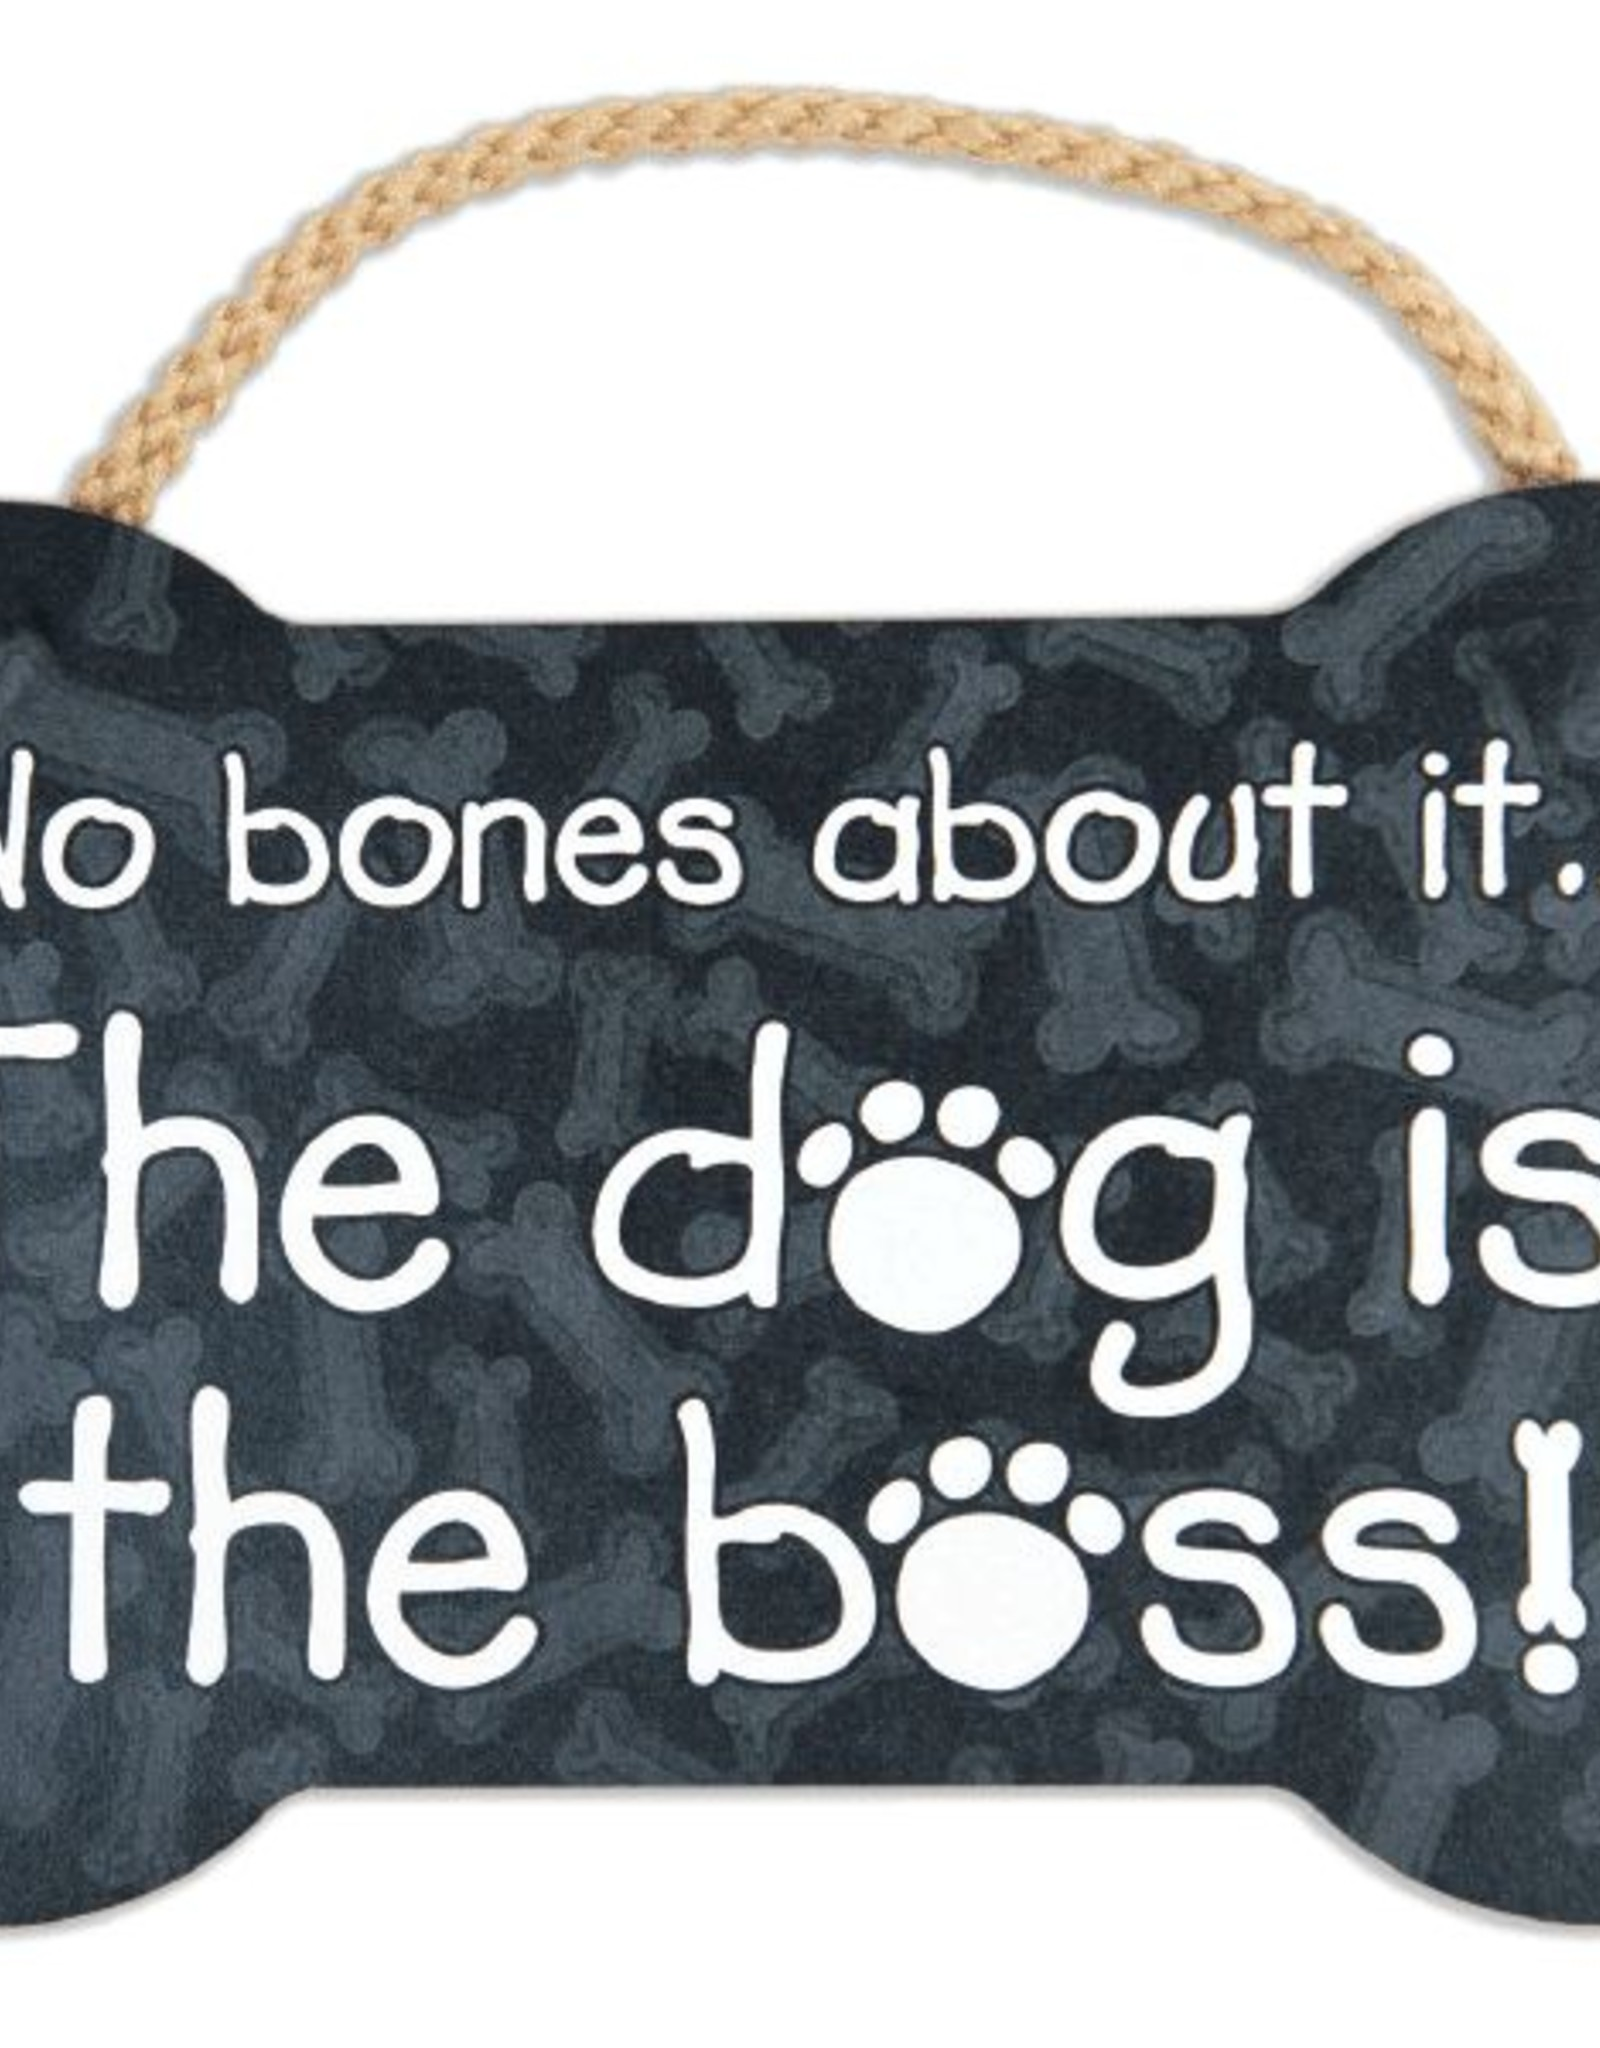 Dog Speak Dog Speak Rope Hanging Sign - No Bones About It...The Dog Is The Boss